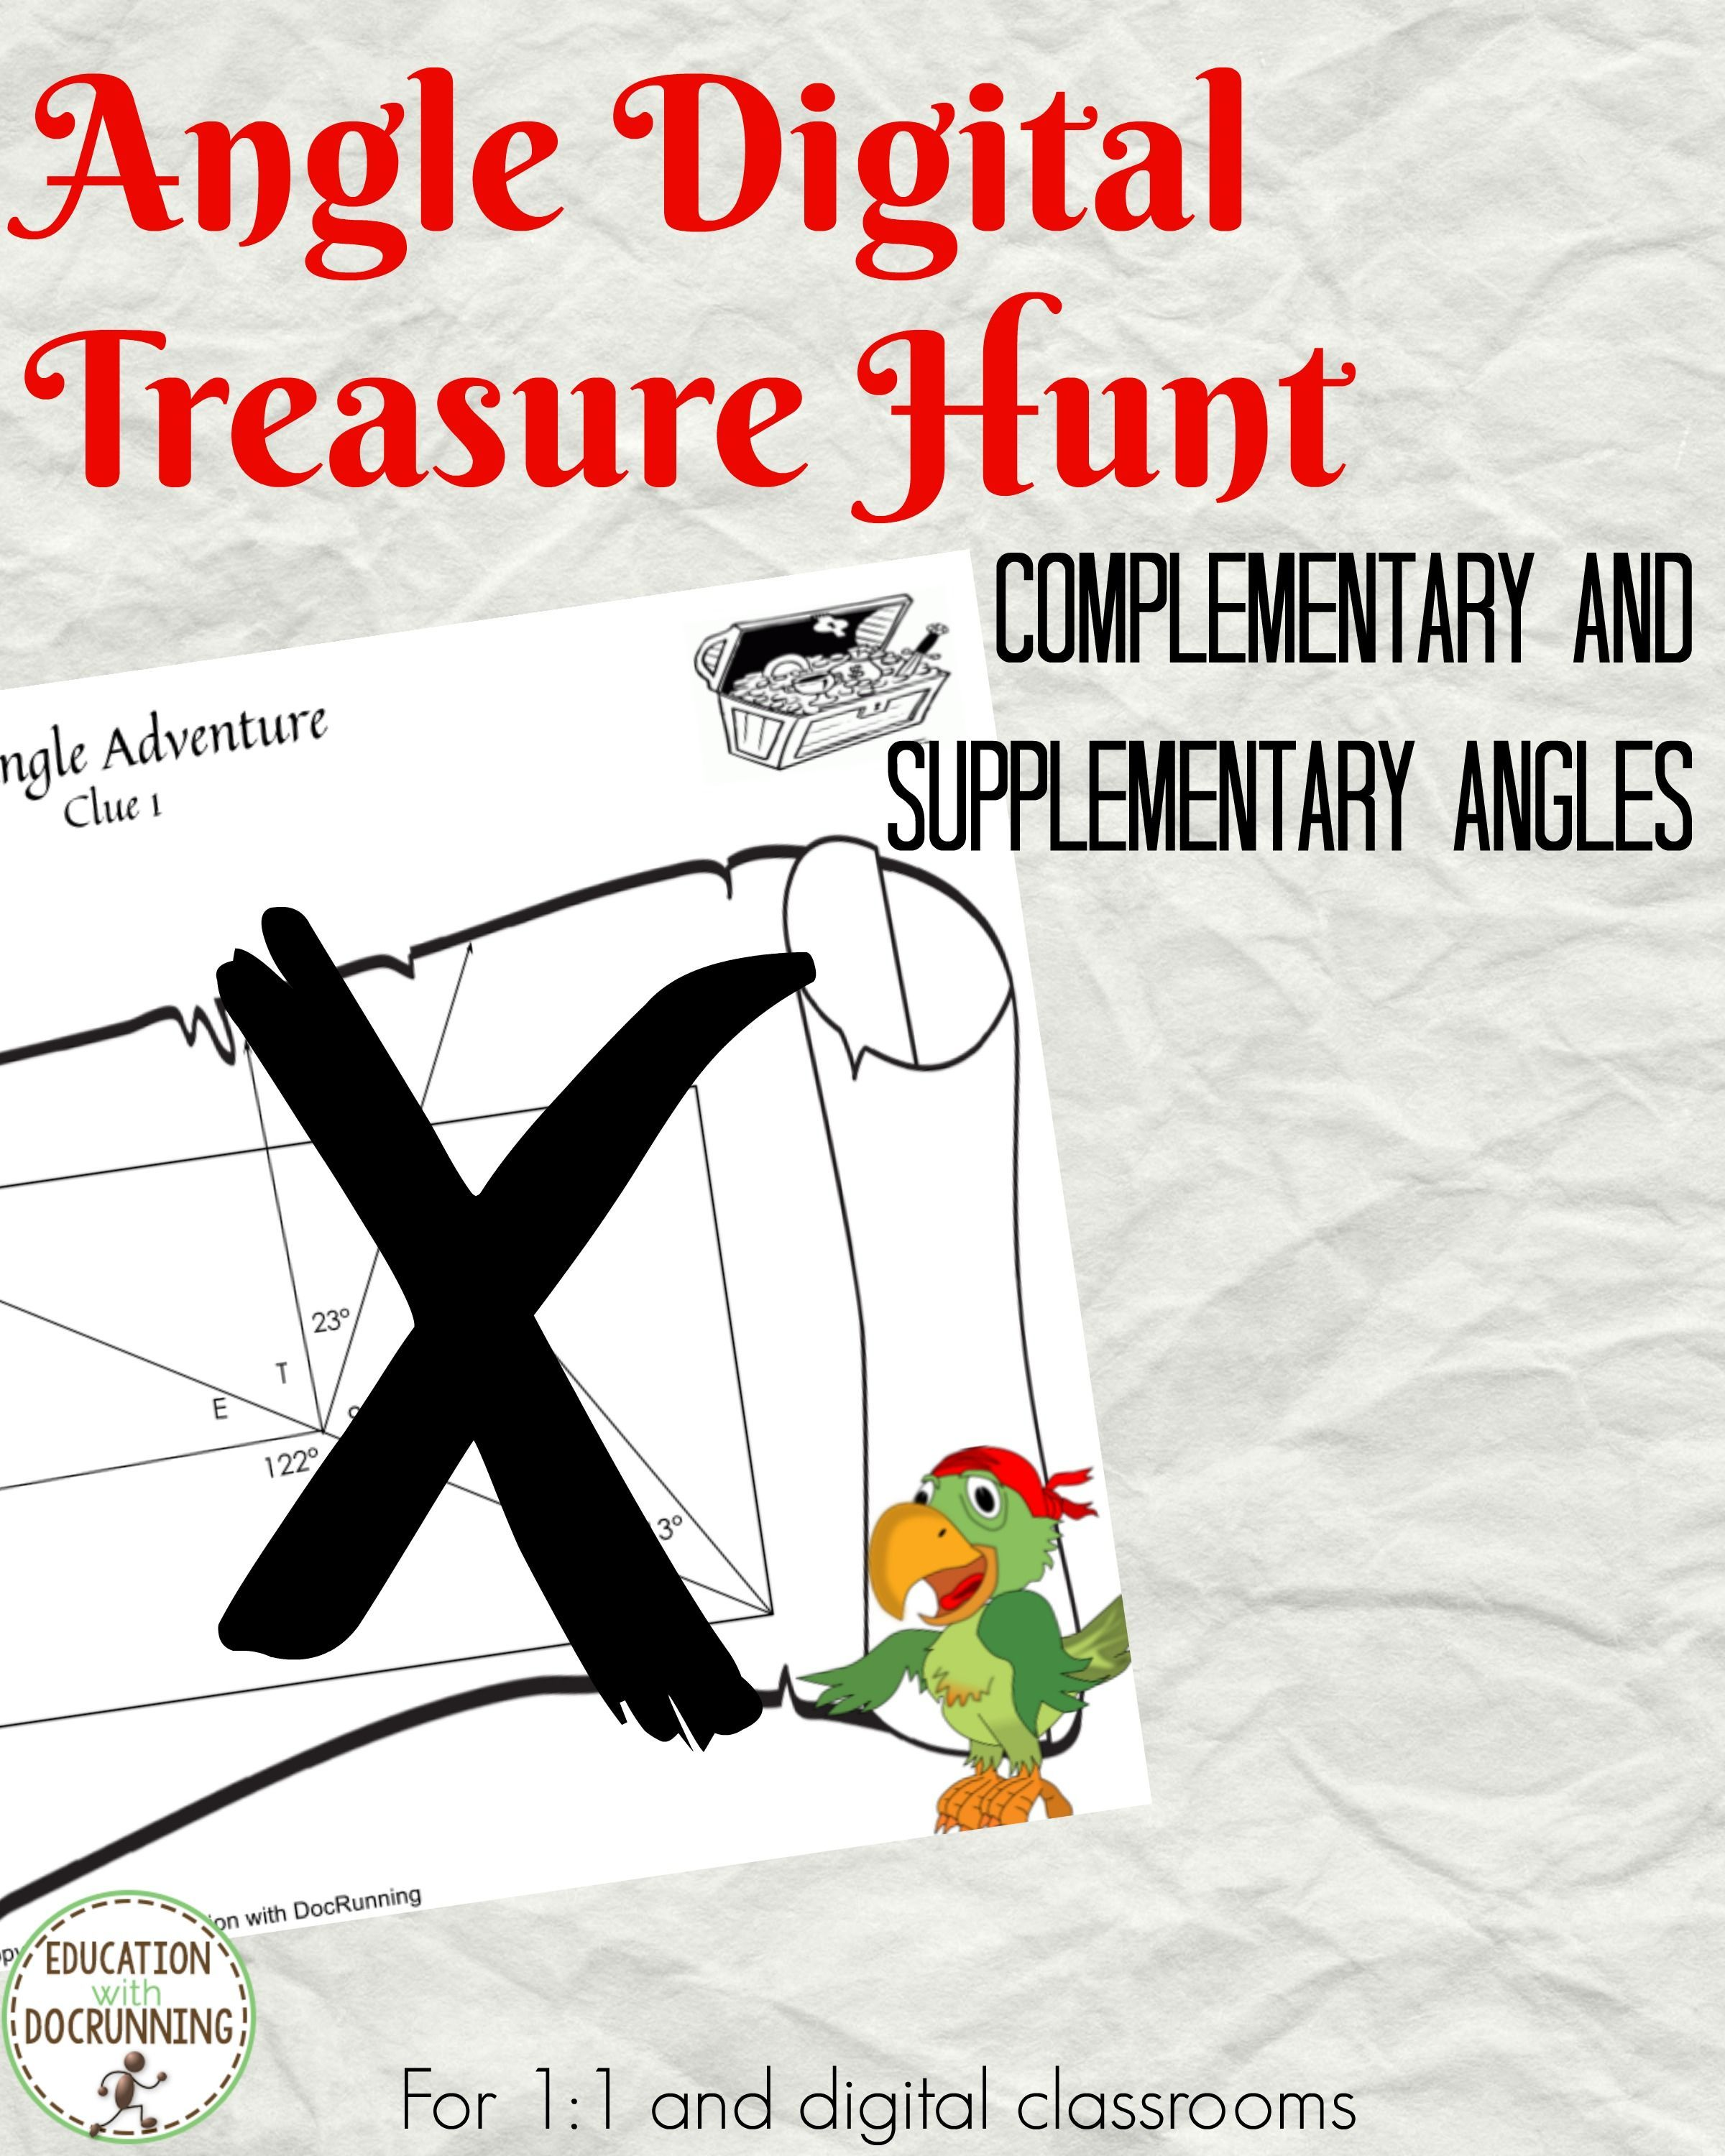 Complementary And Supplementary Angles Activity Digital